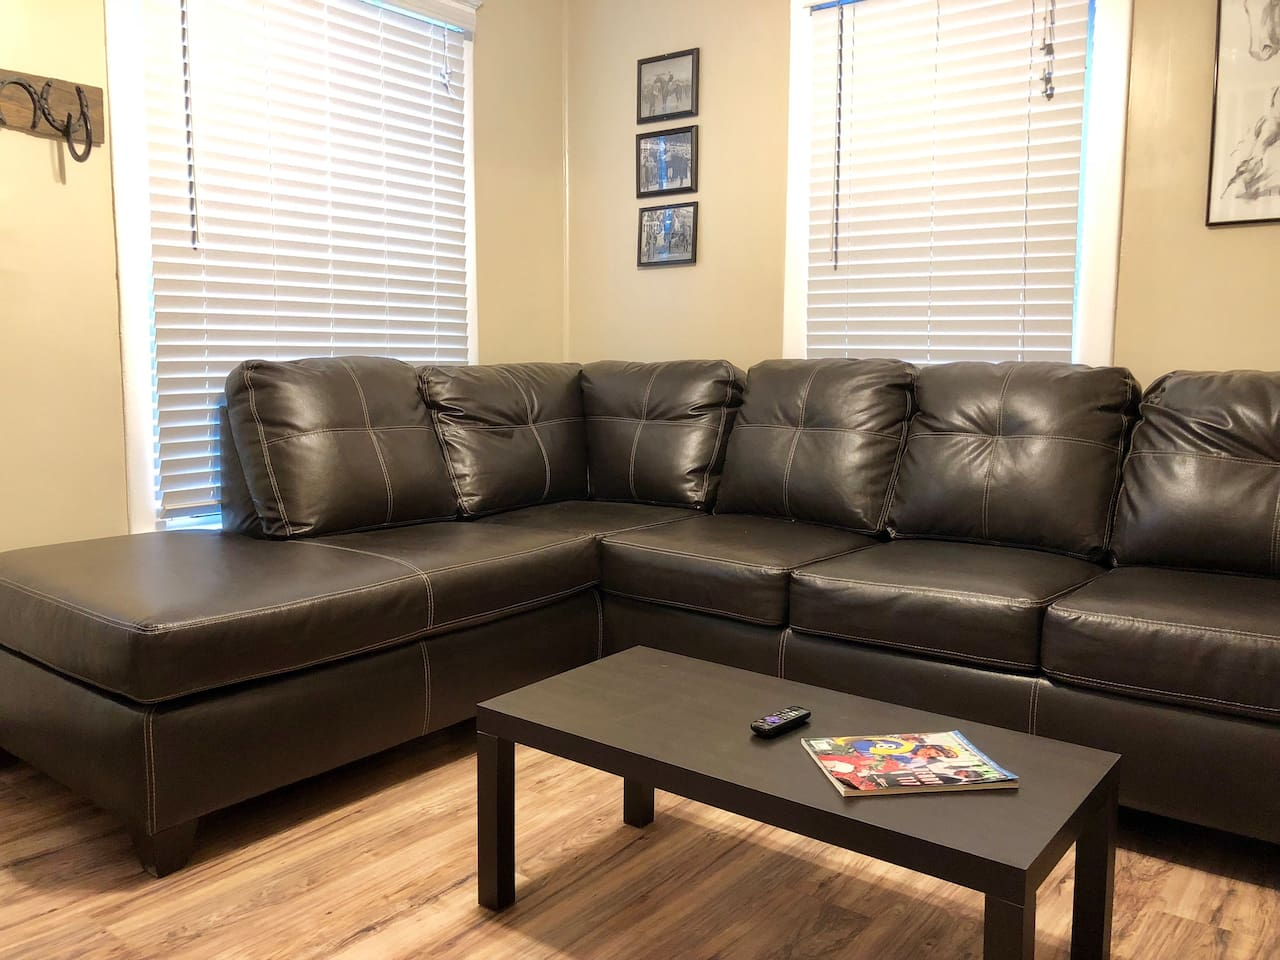 Living room with sectional couch that doubles as a bed for 1 person if needed.